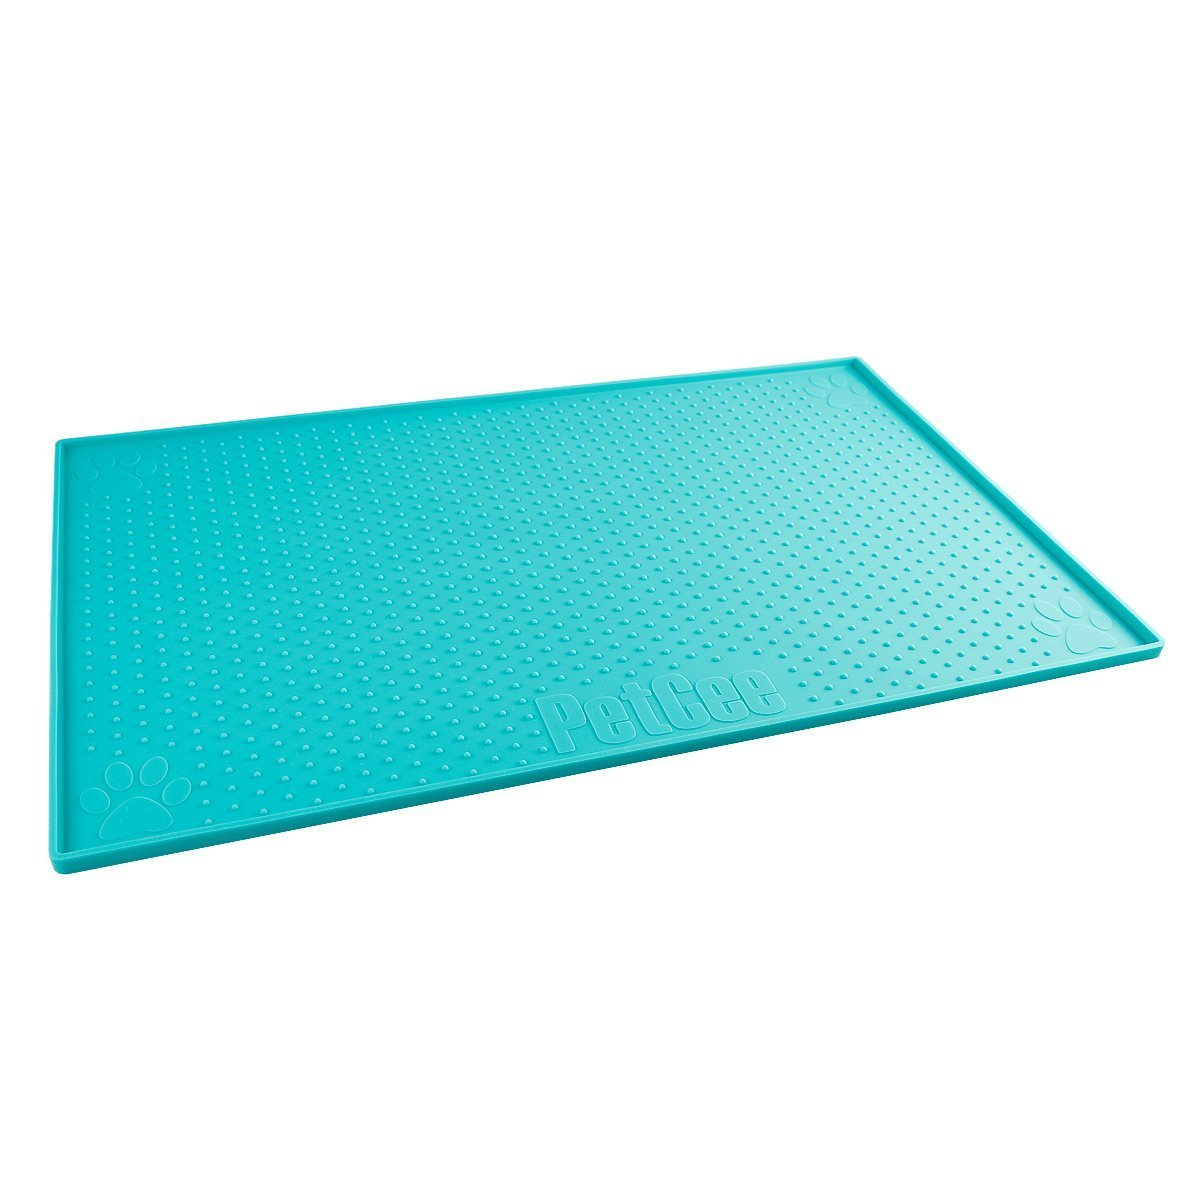 PetCee Large Dog Food Mat,FDA Grade Silicone Large Dog Mat,15.7x23.6 Inch Waterproof Non Slip Pet Food Mat for Dog & Cat (Deepskyblue)